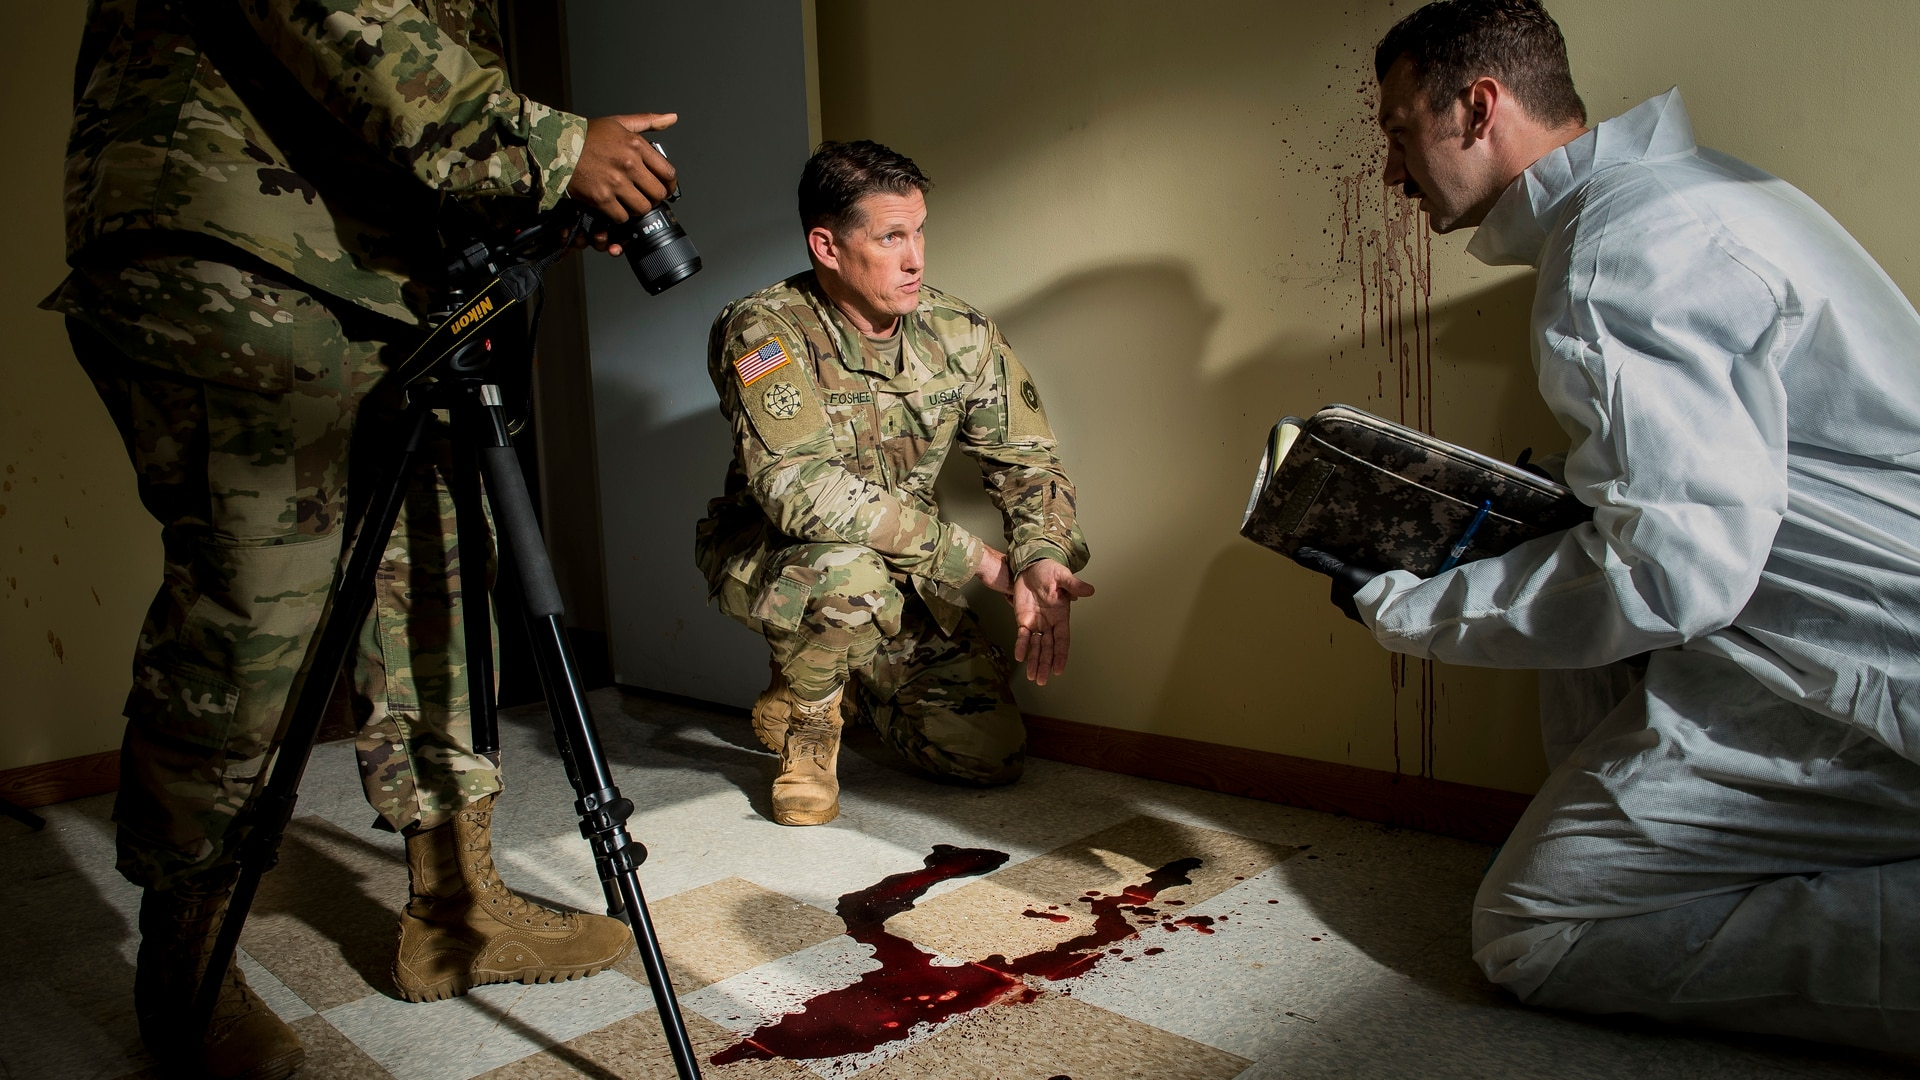 An Army special agent poses in a staged crime scene at Fort Belvoir, Virginia, as part of a photo shoot designed to promote and recruit warrant officers in the CID career field. (Master Sgt. Michel Sauret/Army)